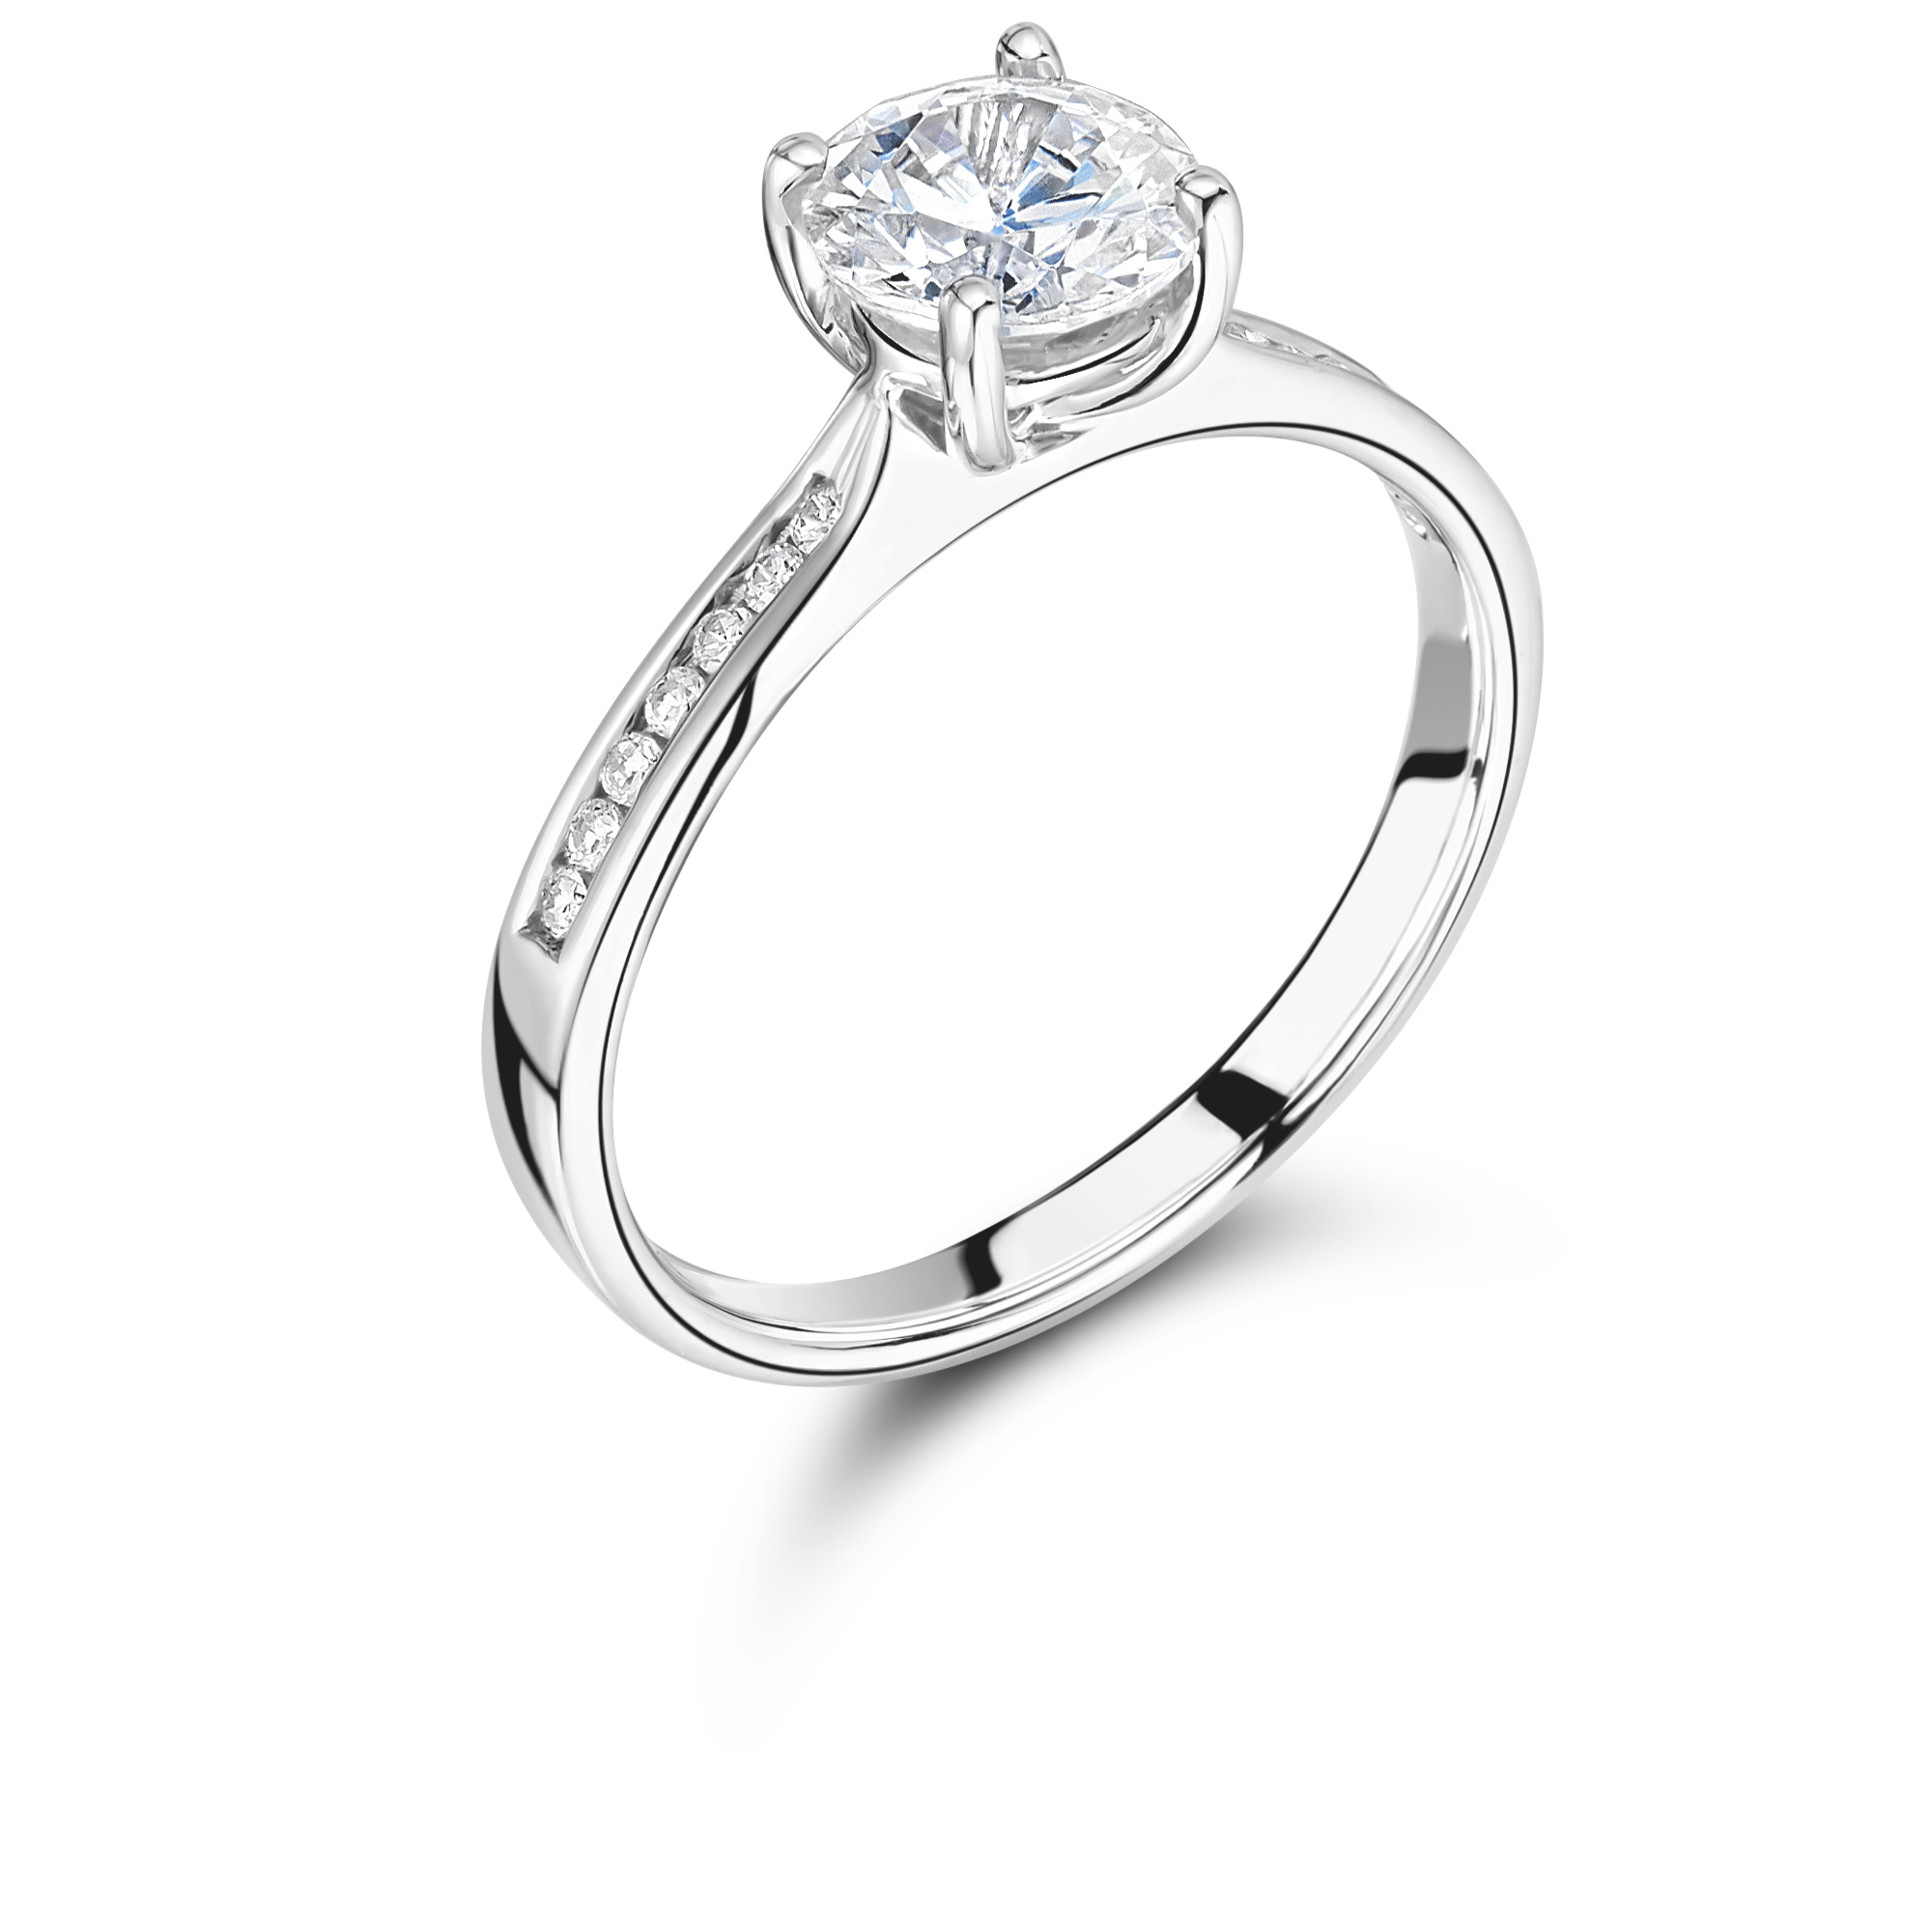 engagement solitaire igi rings certified platinum womens round image jewellery diamond ring delicate